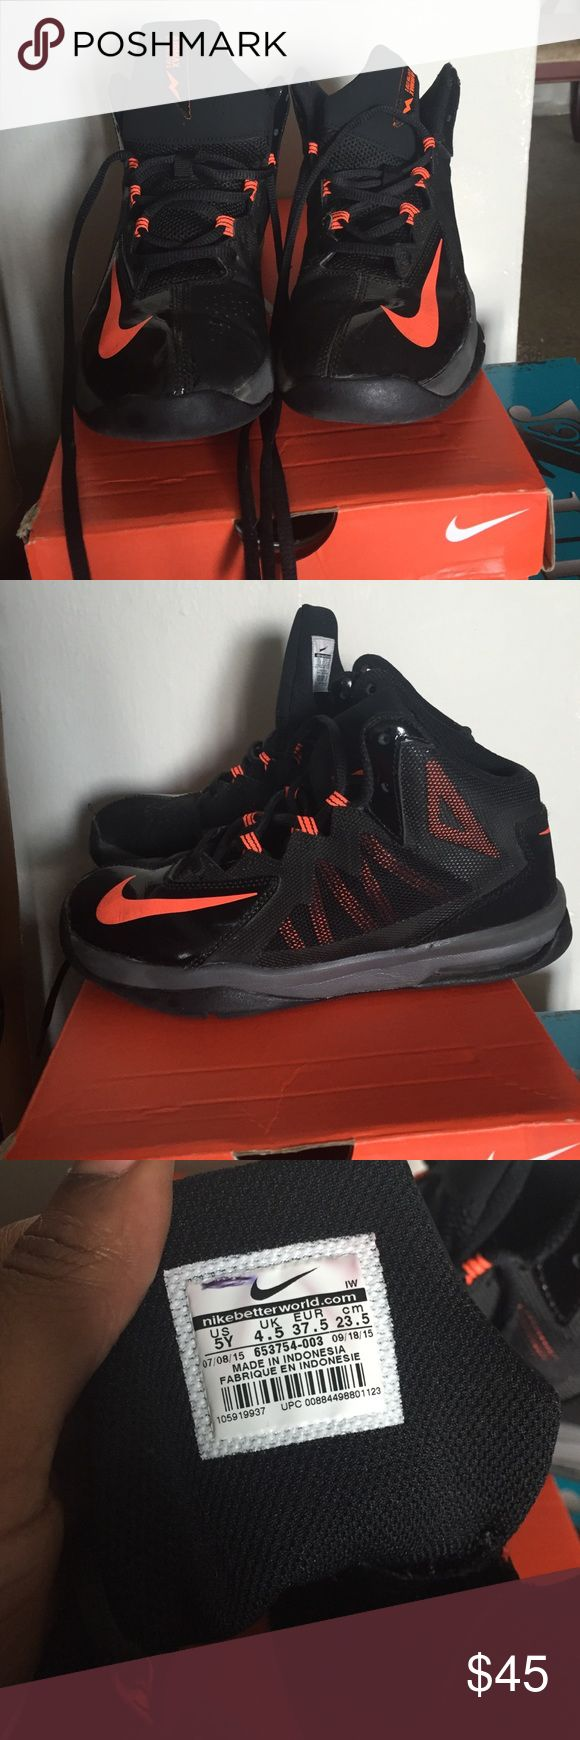 Boys Air Max Stutter Step 2 Boys Air Max Stutter Step 2, Size 5, super comfy, neon orange color is great w/ the black , great pair of quality sneakers Nike Shoes Sneakers